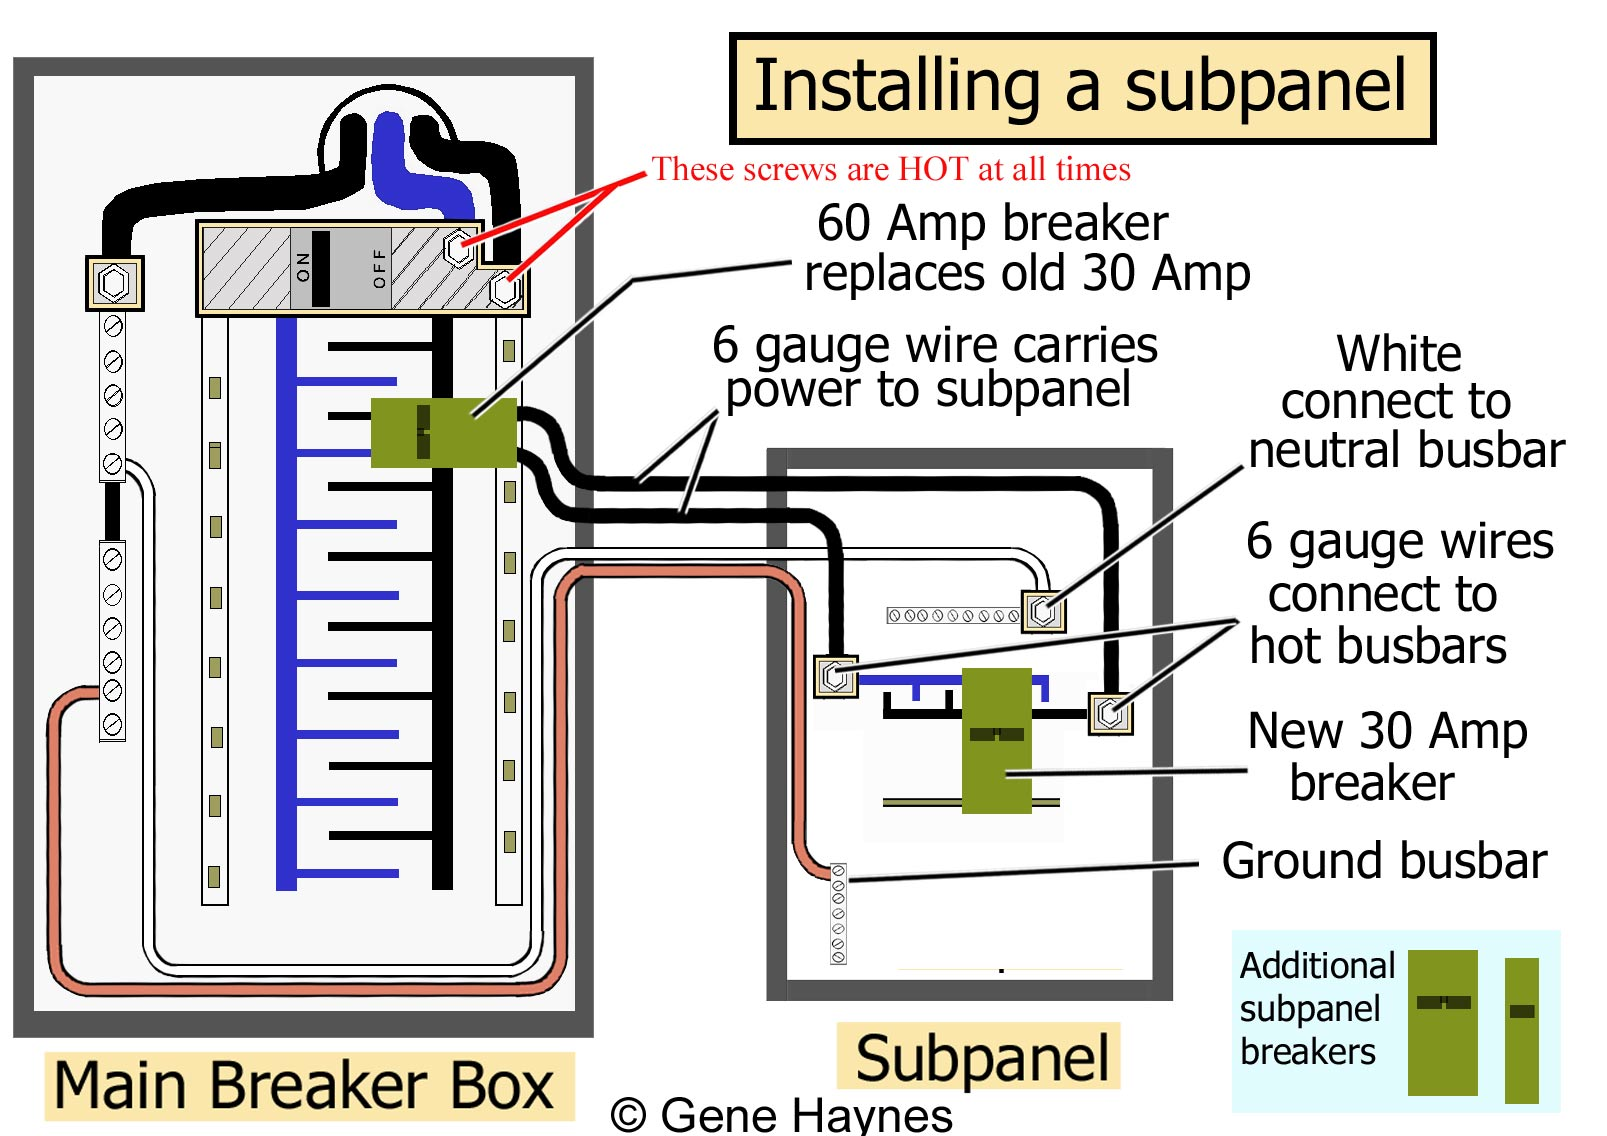 Wiring Diagram 230v Line Neutral Library How To Install A Subpanel Main Lug See Larger